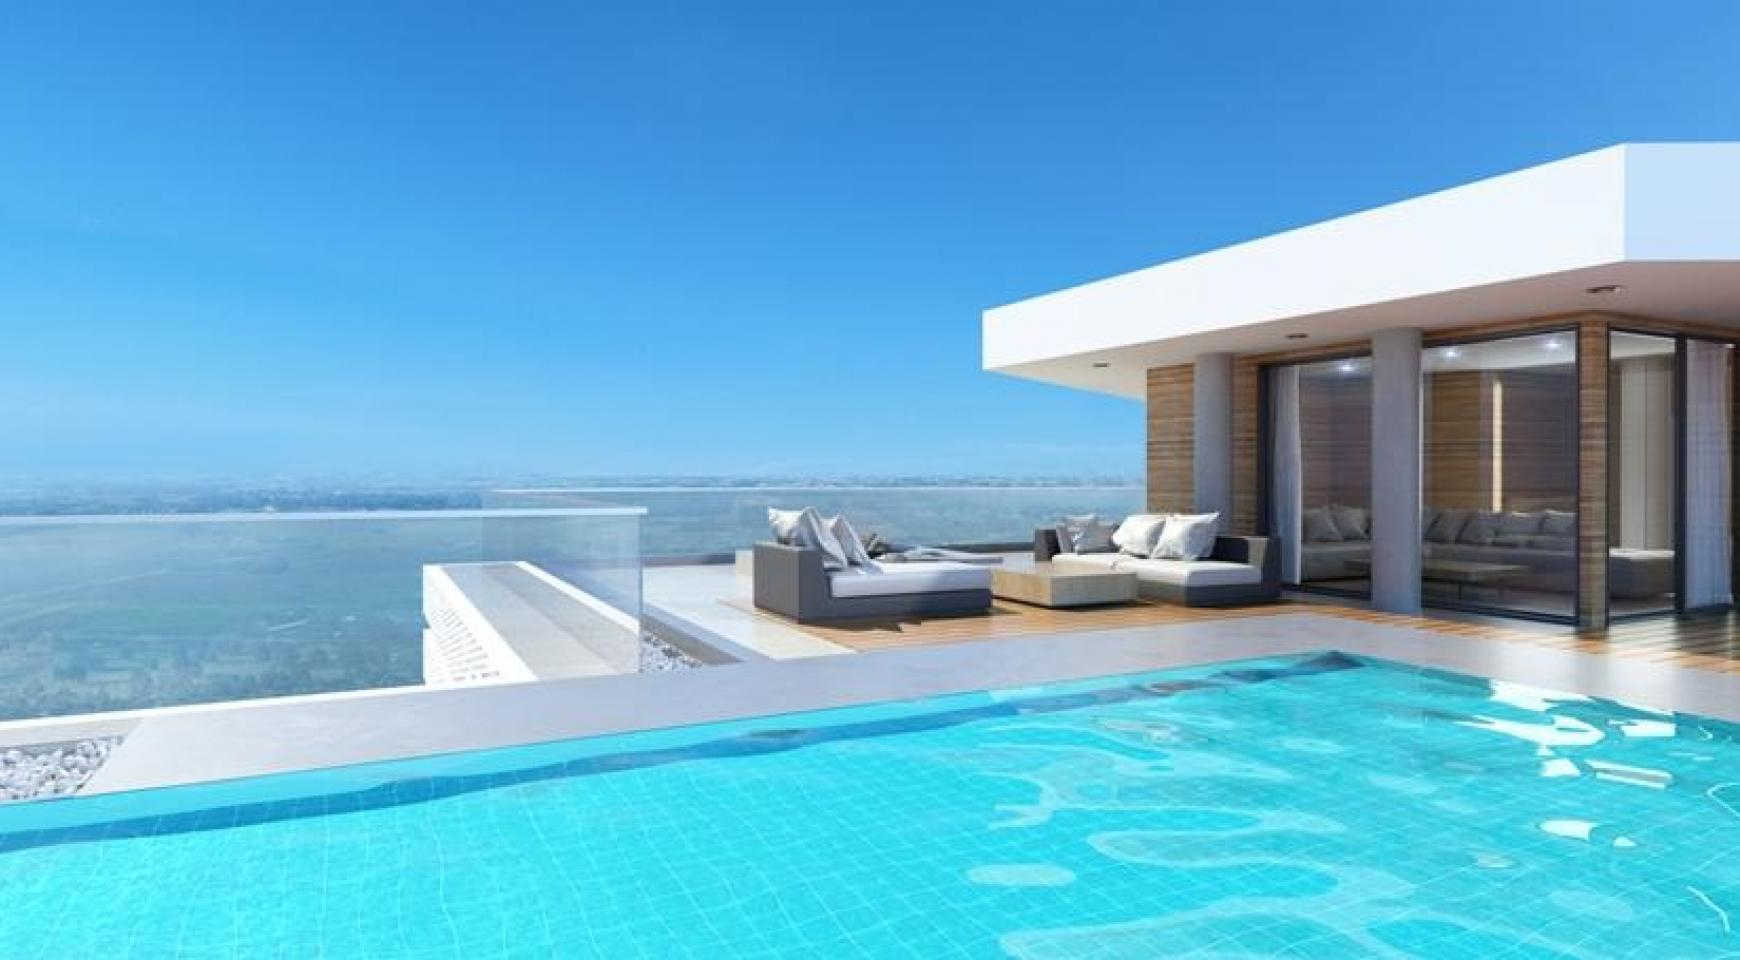 Contemporary 4 Bedroom Villa in a New Project by the Sea - 34